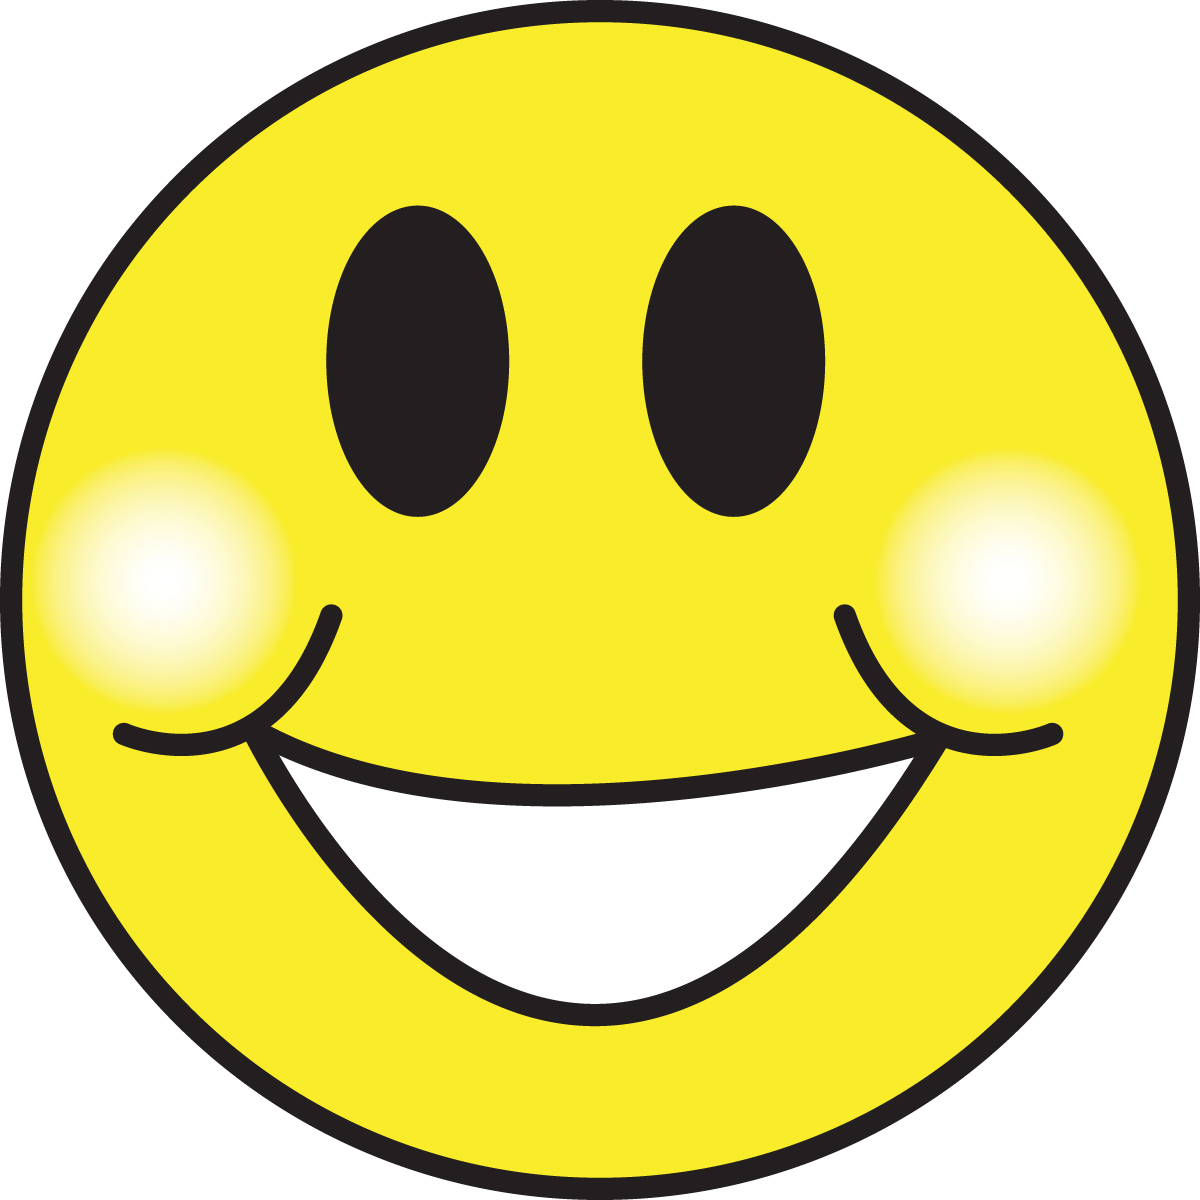 Cute Smiley Faces Images Free Download